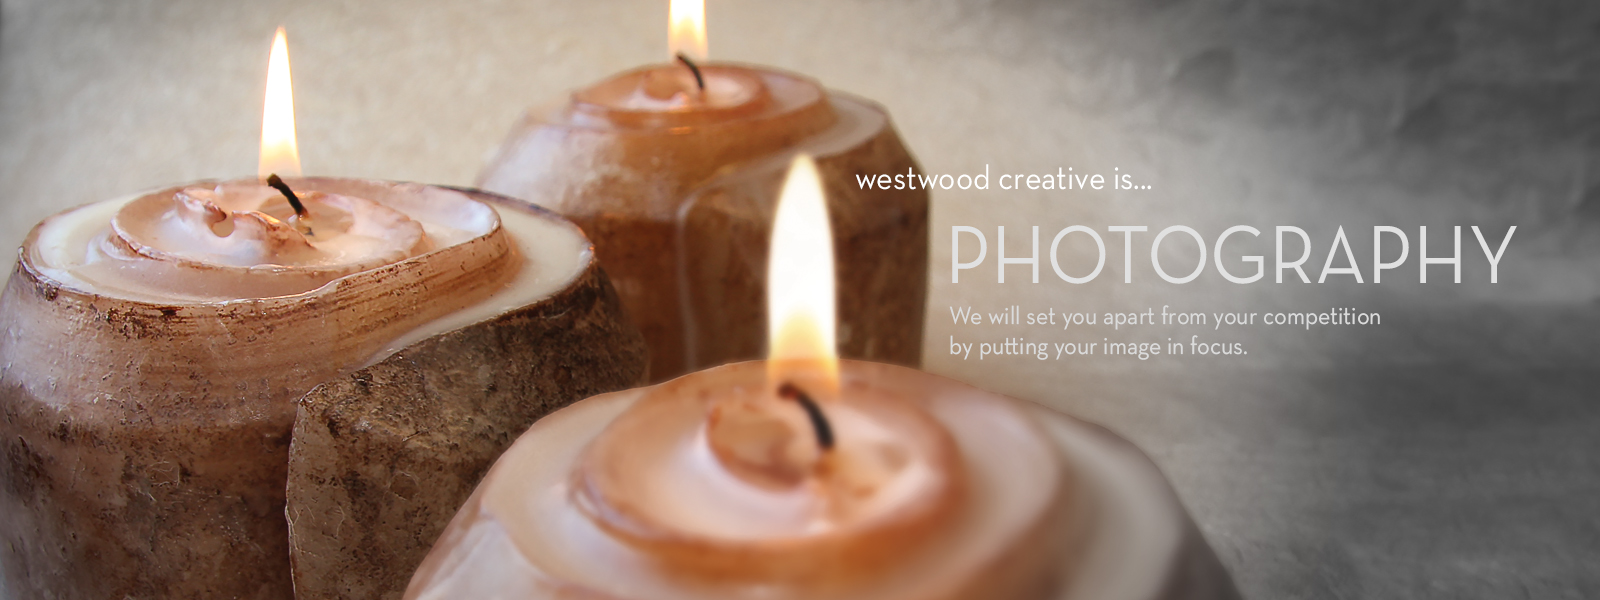 Westwood Creative Photography Services